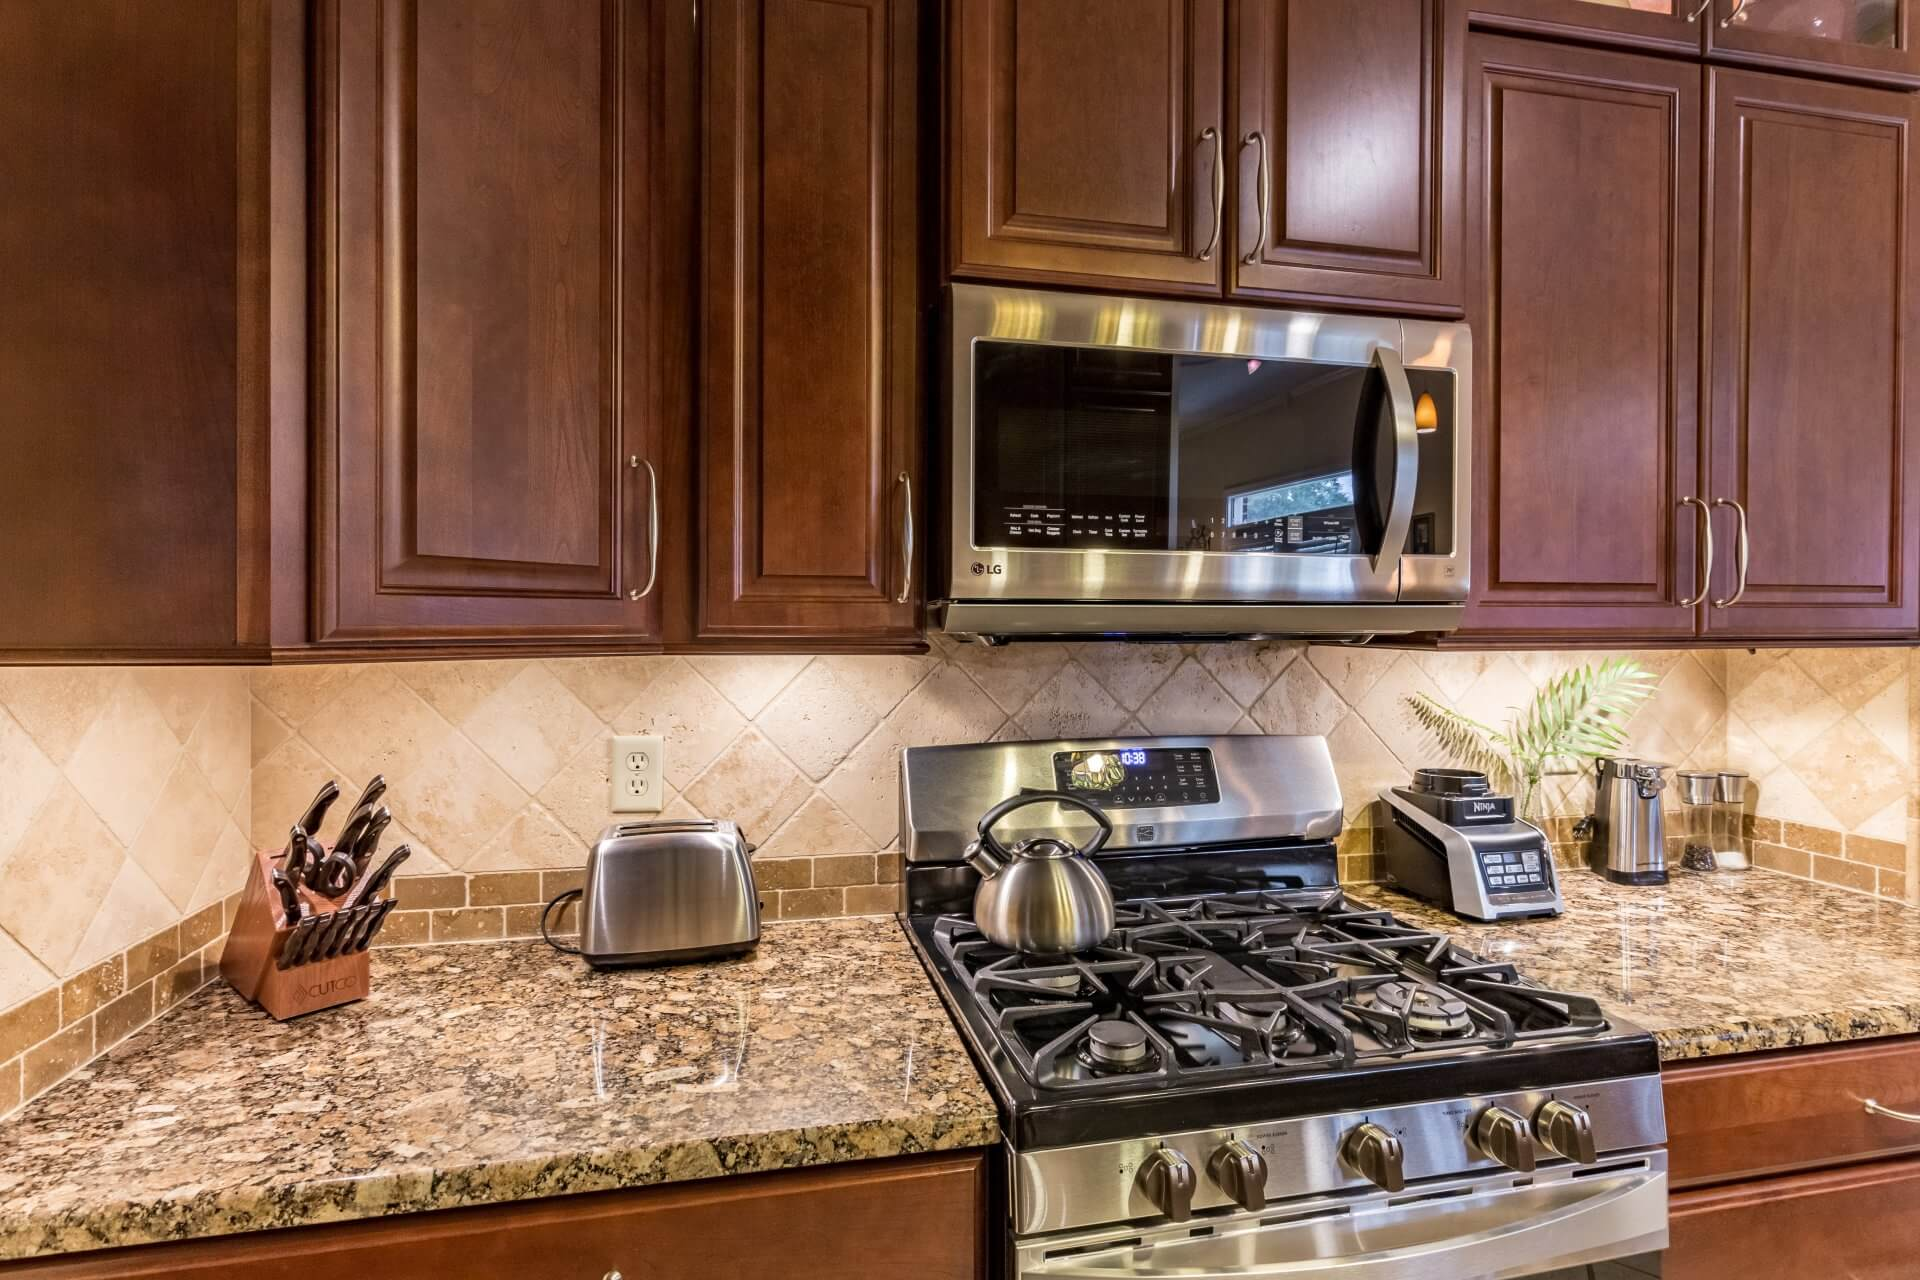 After: Updated countertops with dark and light colors